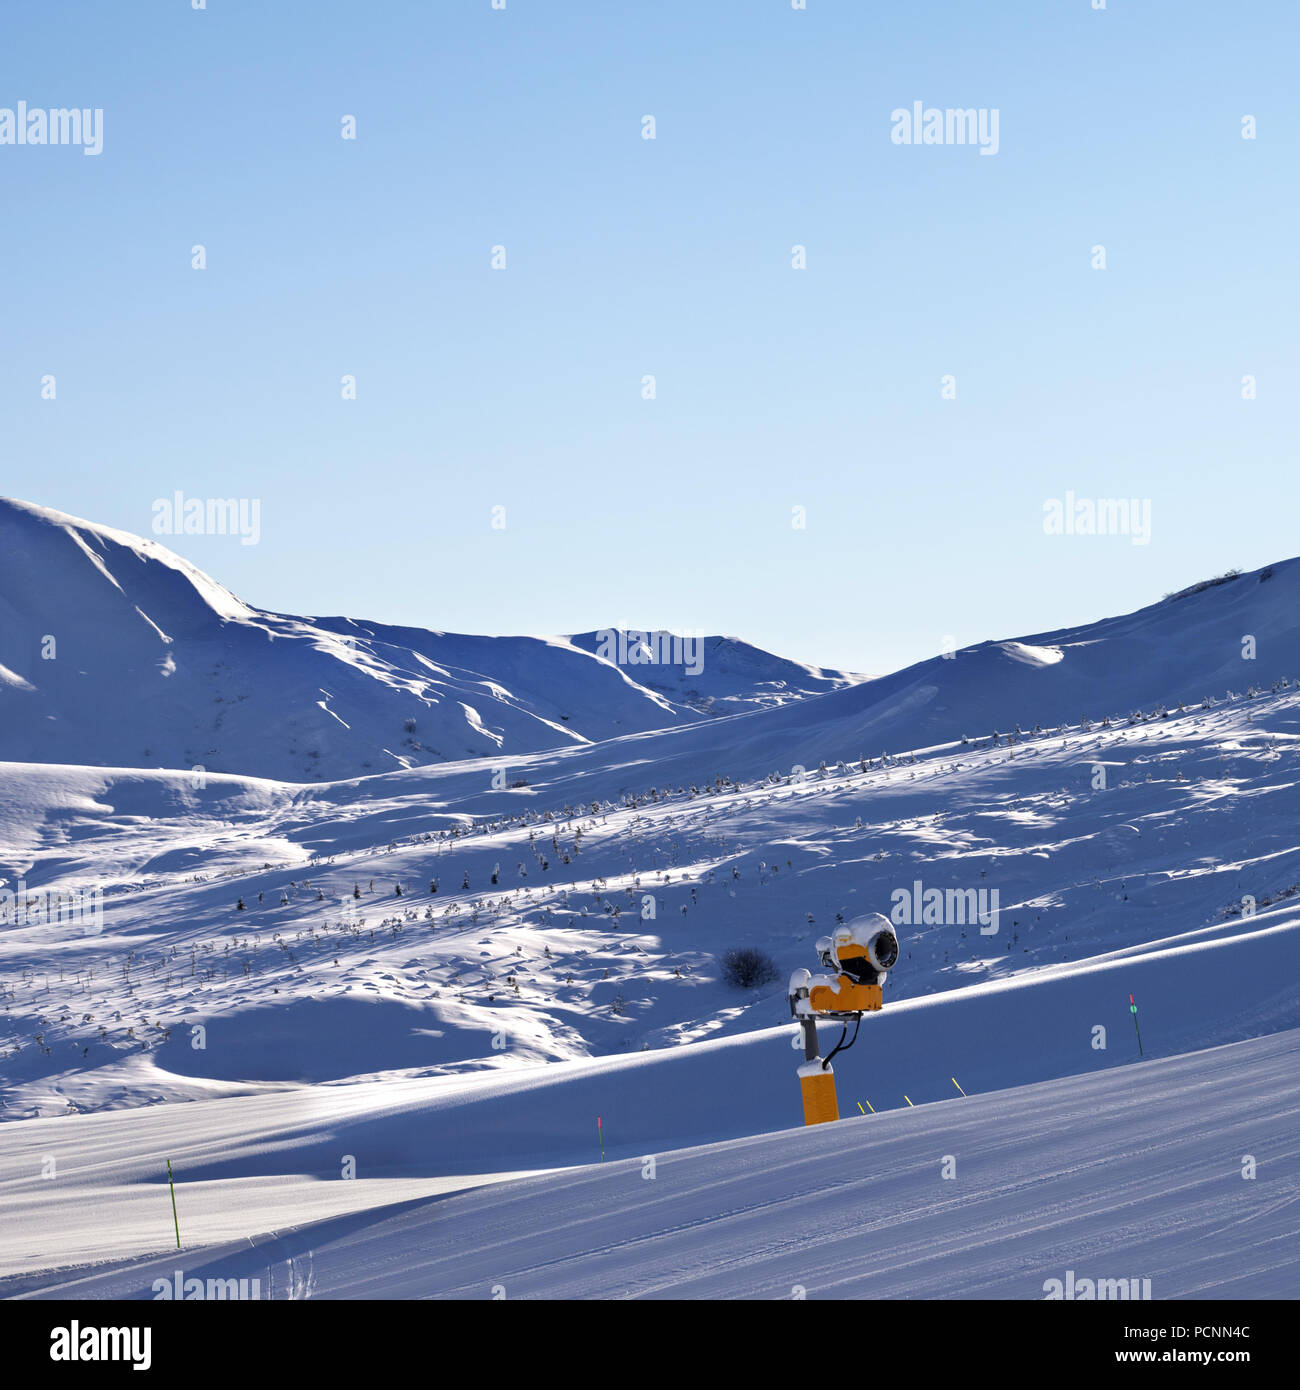 Snowy ski resort at early morning. Greater Caucasus in winter, Shahdagh, Azerbaijan. - Stock Image